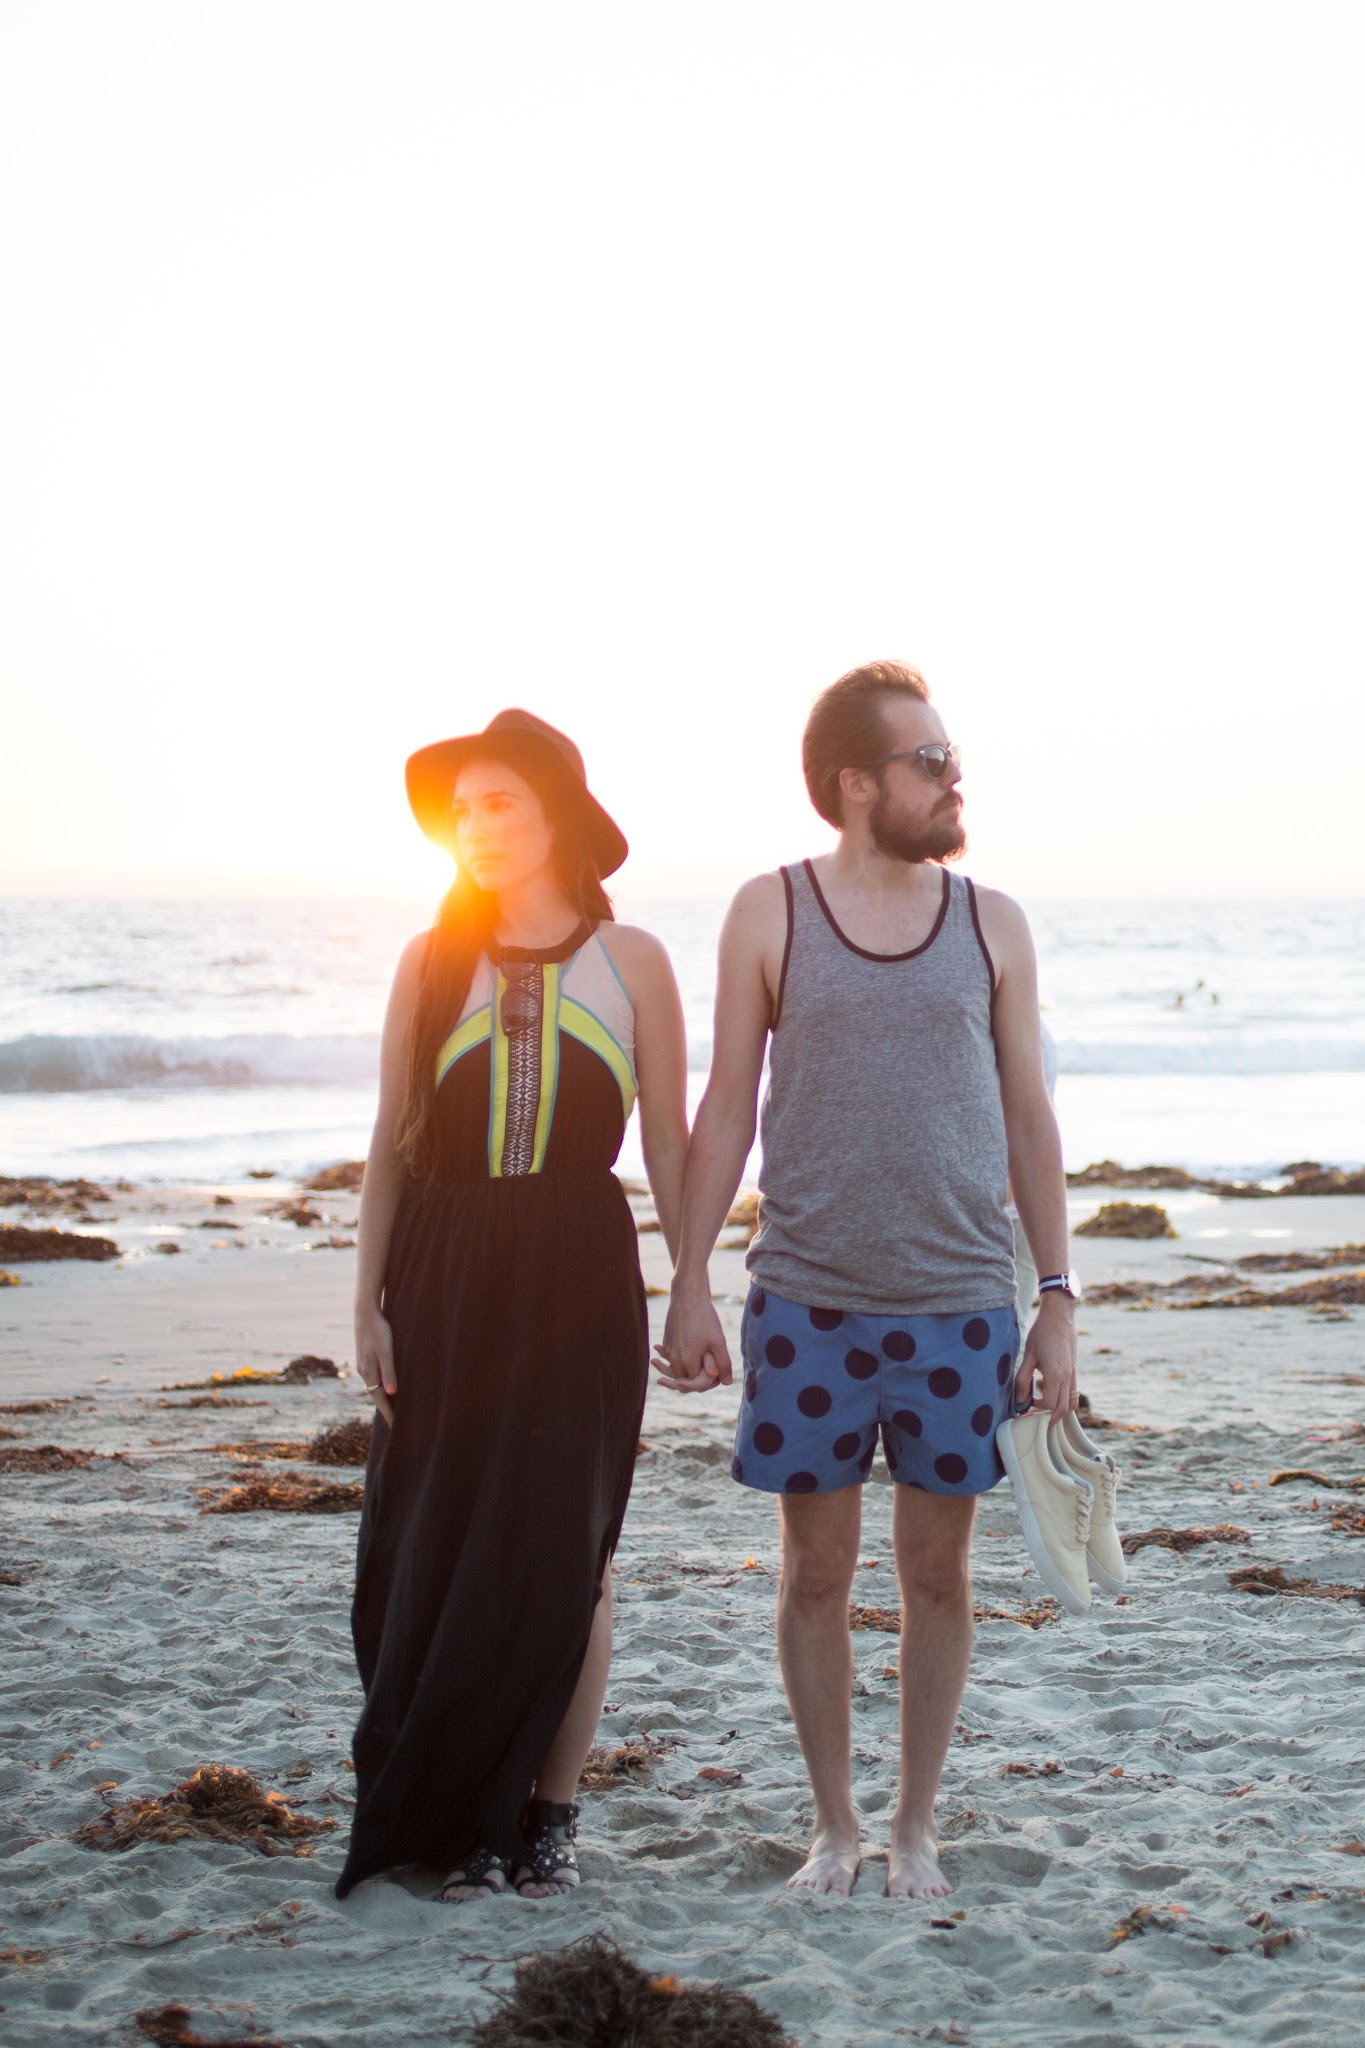 kelseybang.com- his and her style at the beach